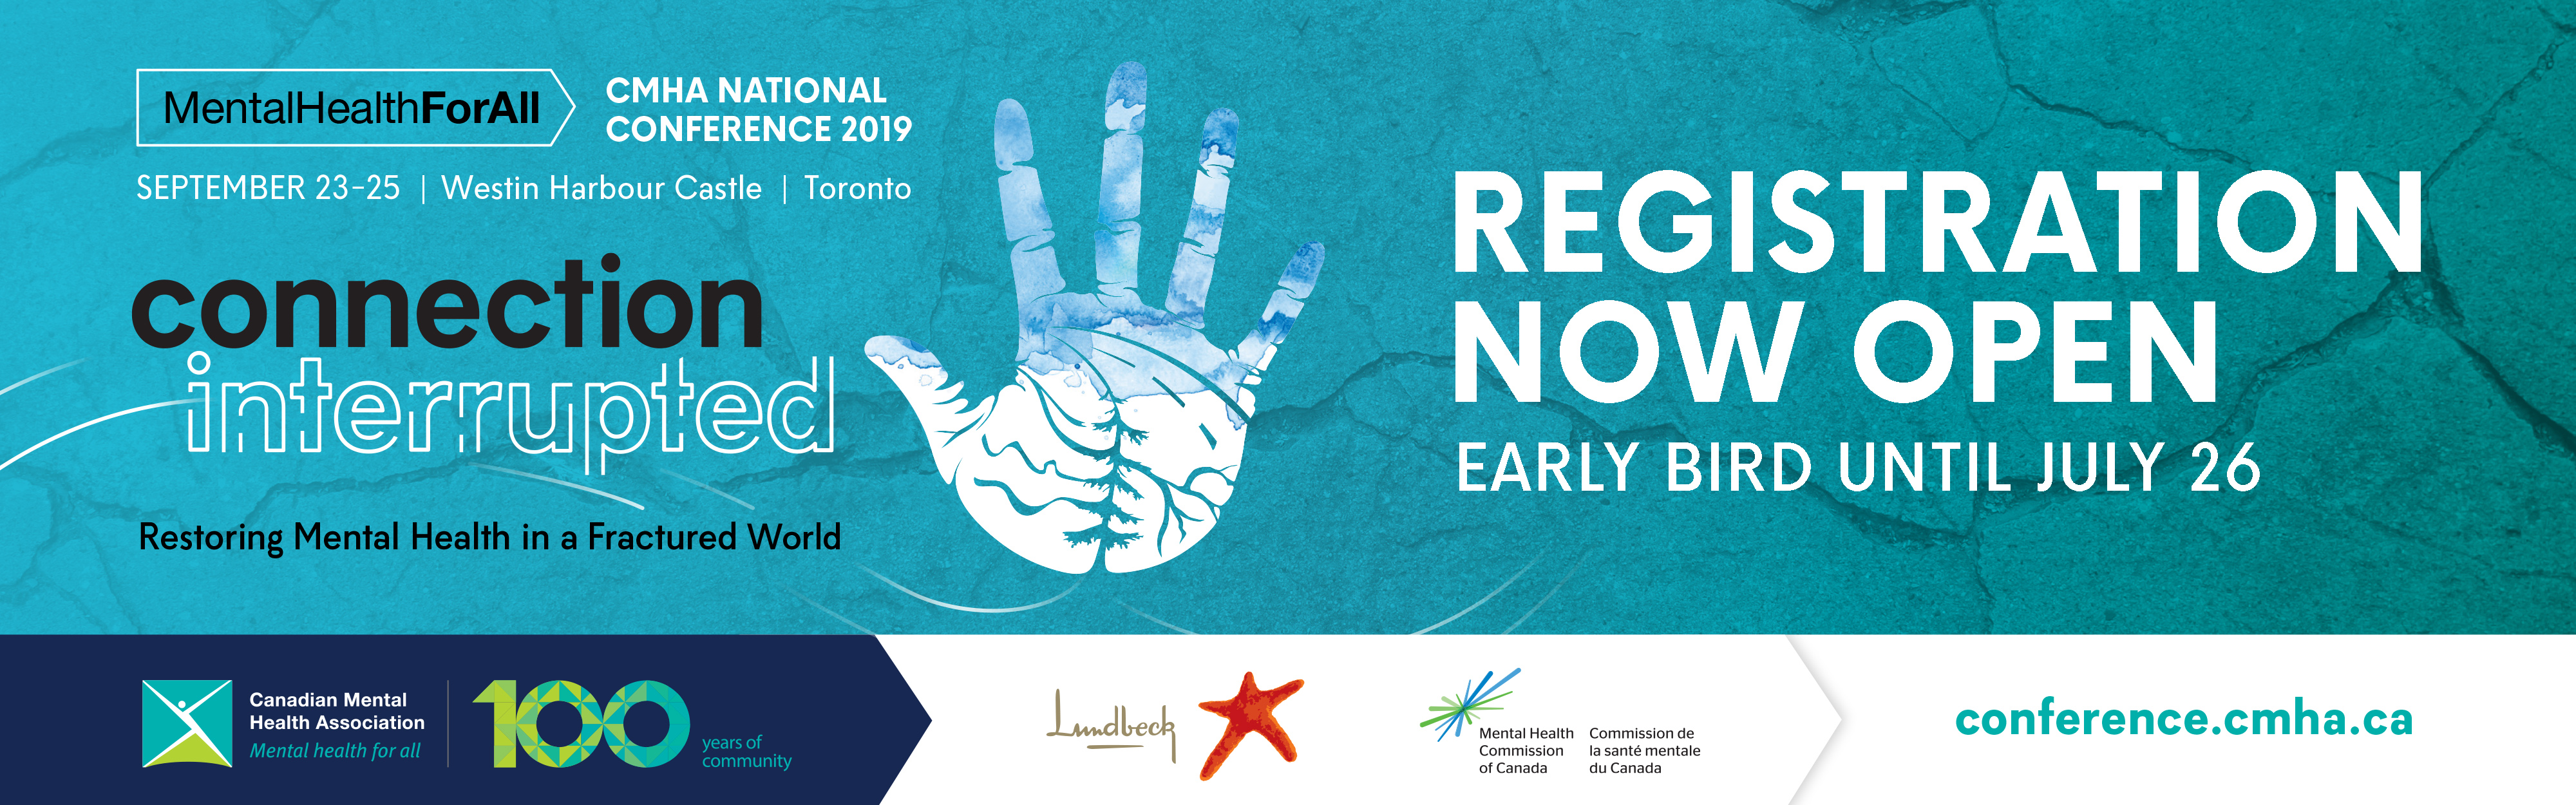 Mental Health for All Conference - early bird until July 26